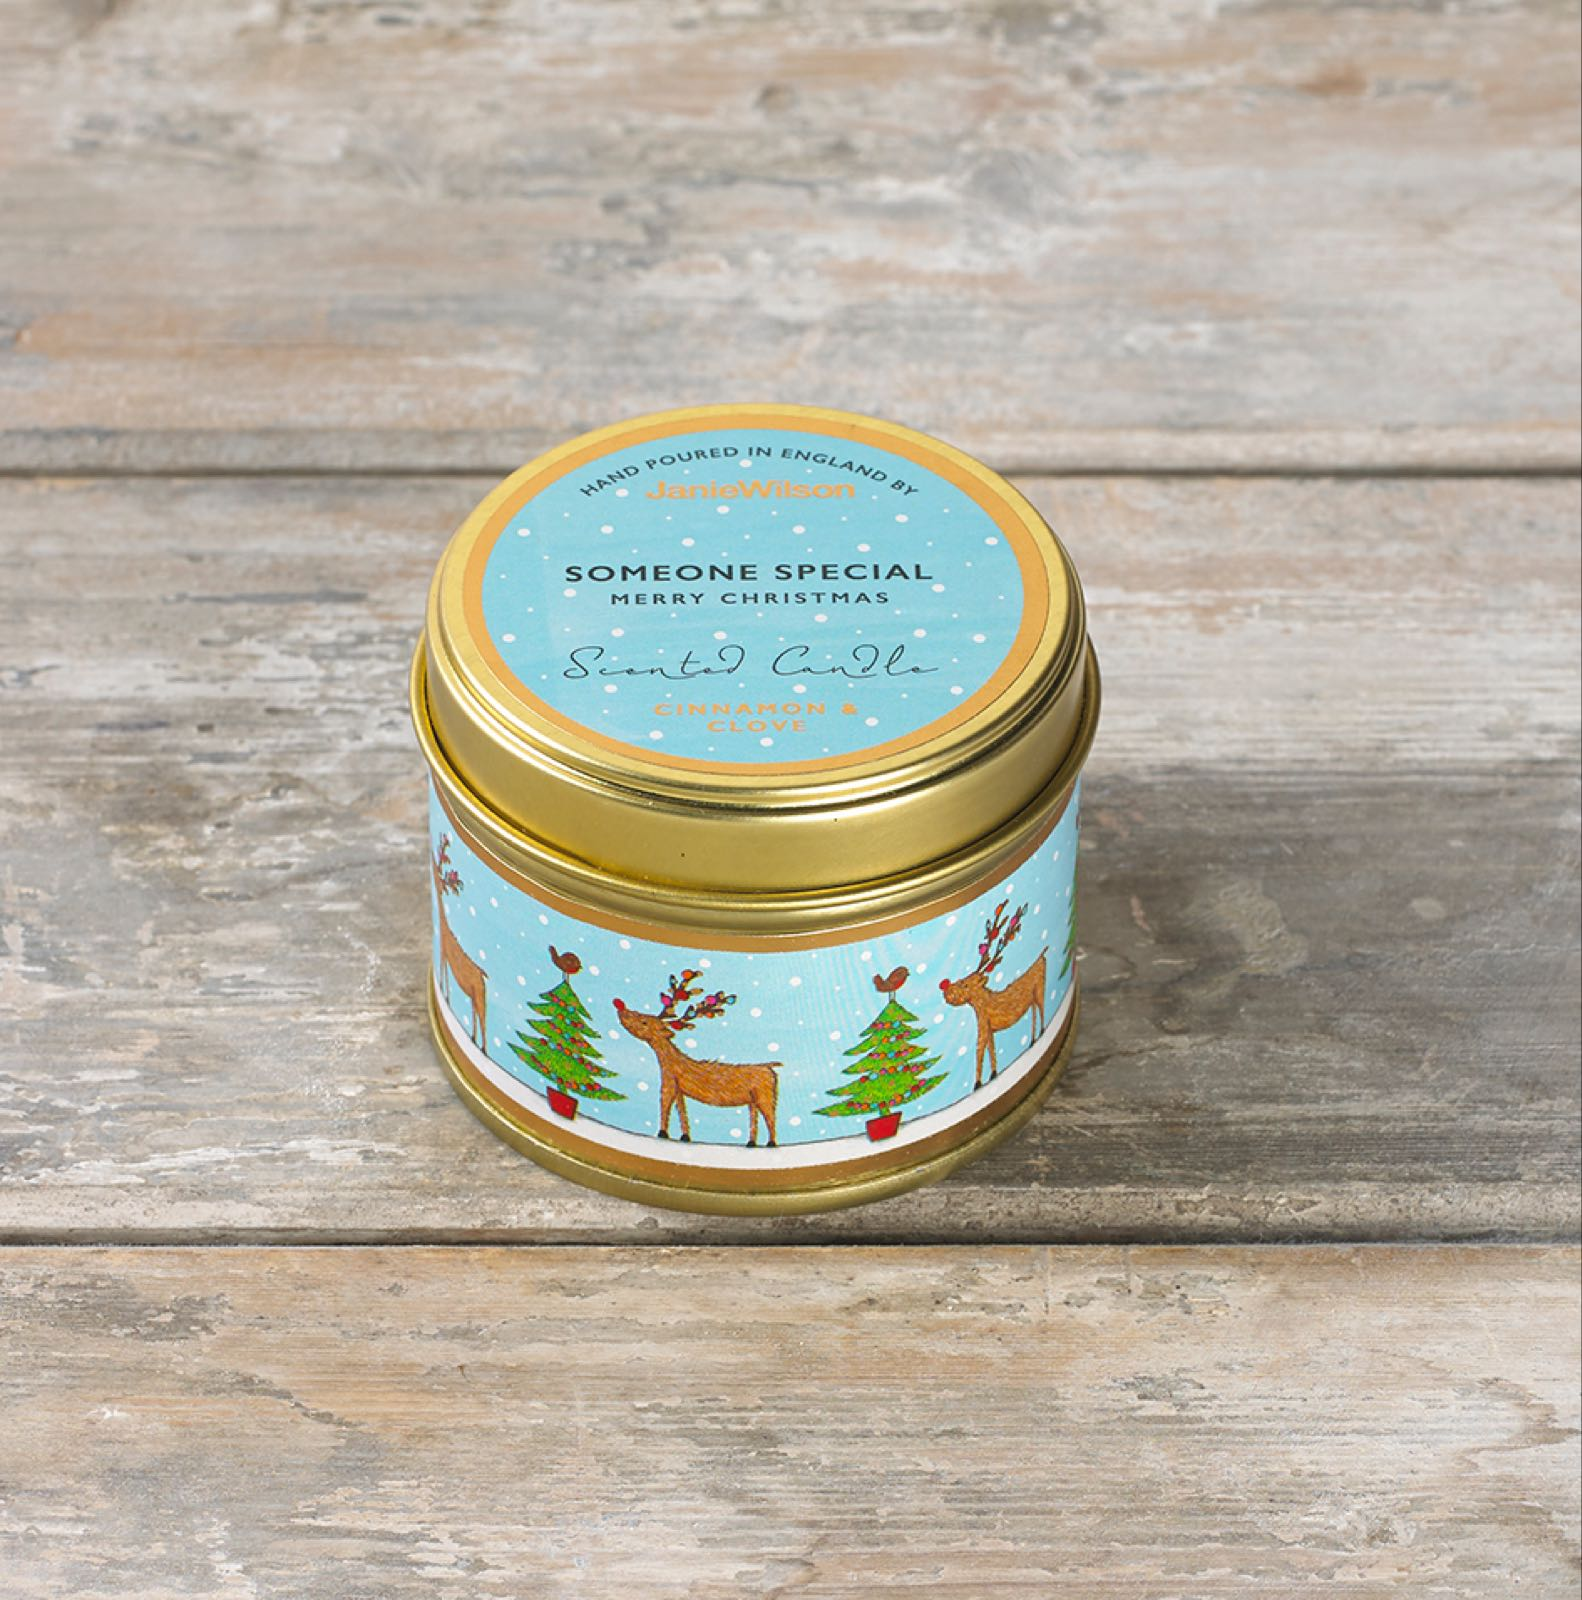 Janie wilson someone special merry Christmas fragranced cinnamon and clove small tinned candle